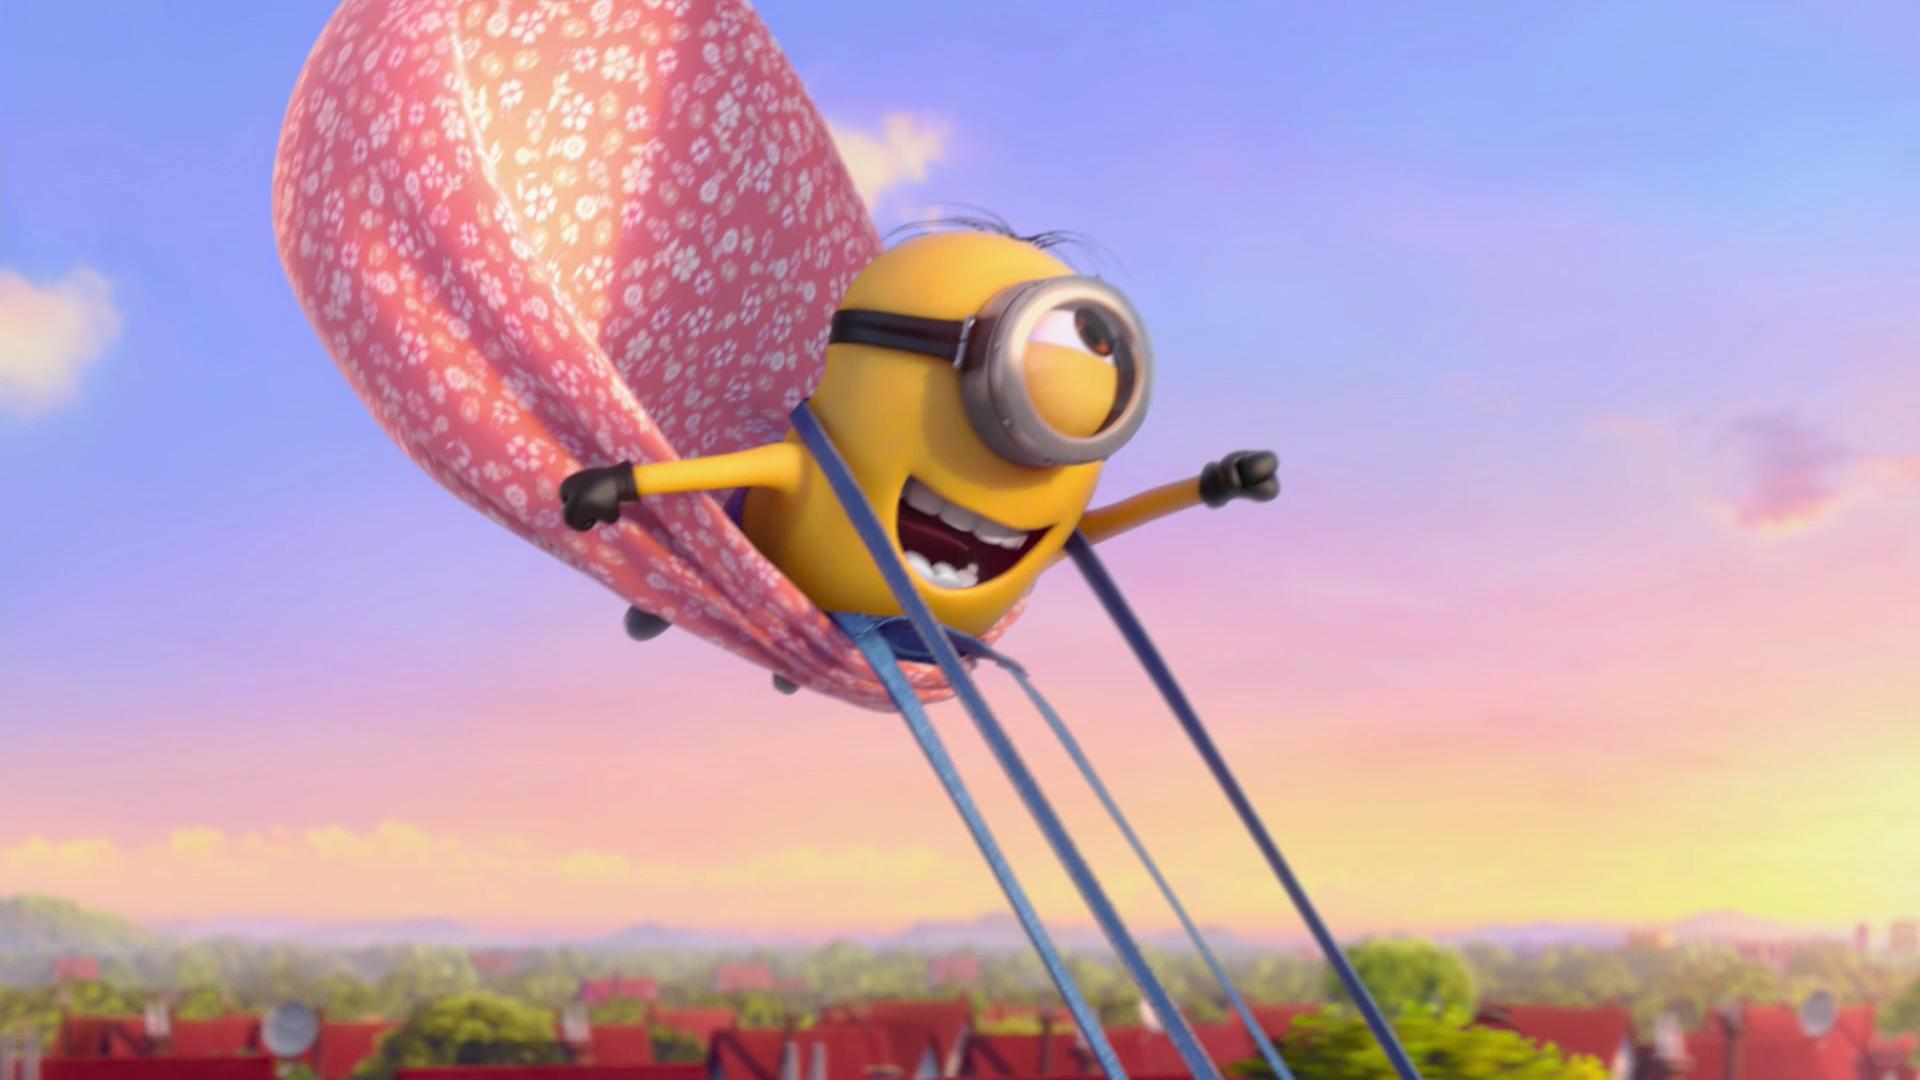 despicable-me-minions-spicable-Me-Movies-HD-wallpaper-wpc5804090